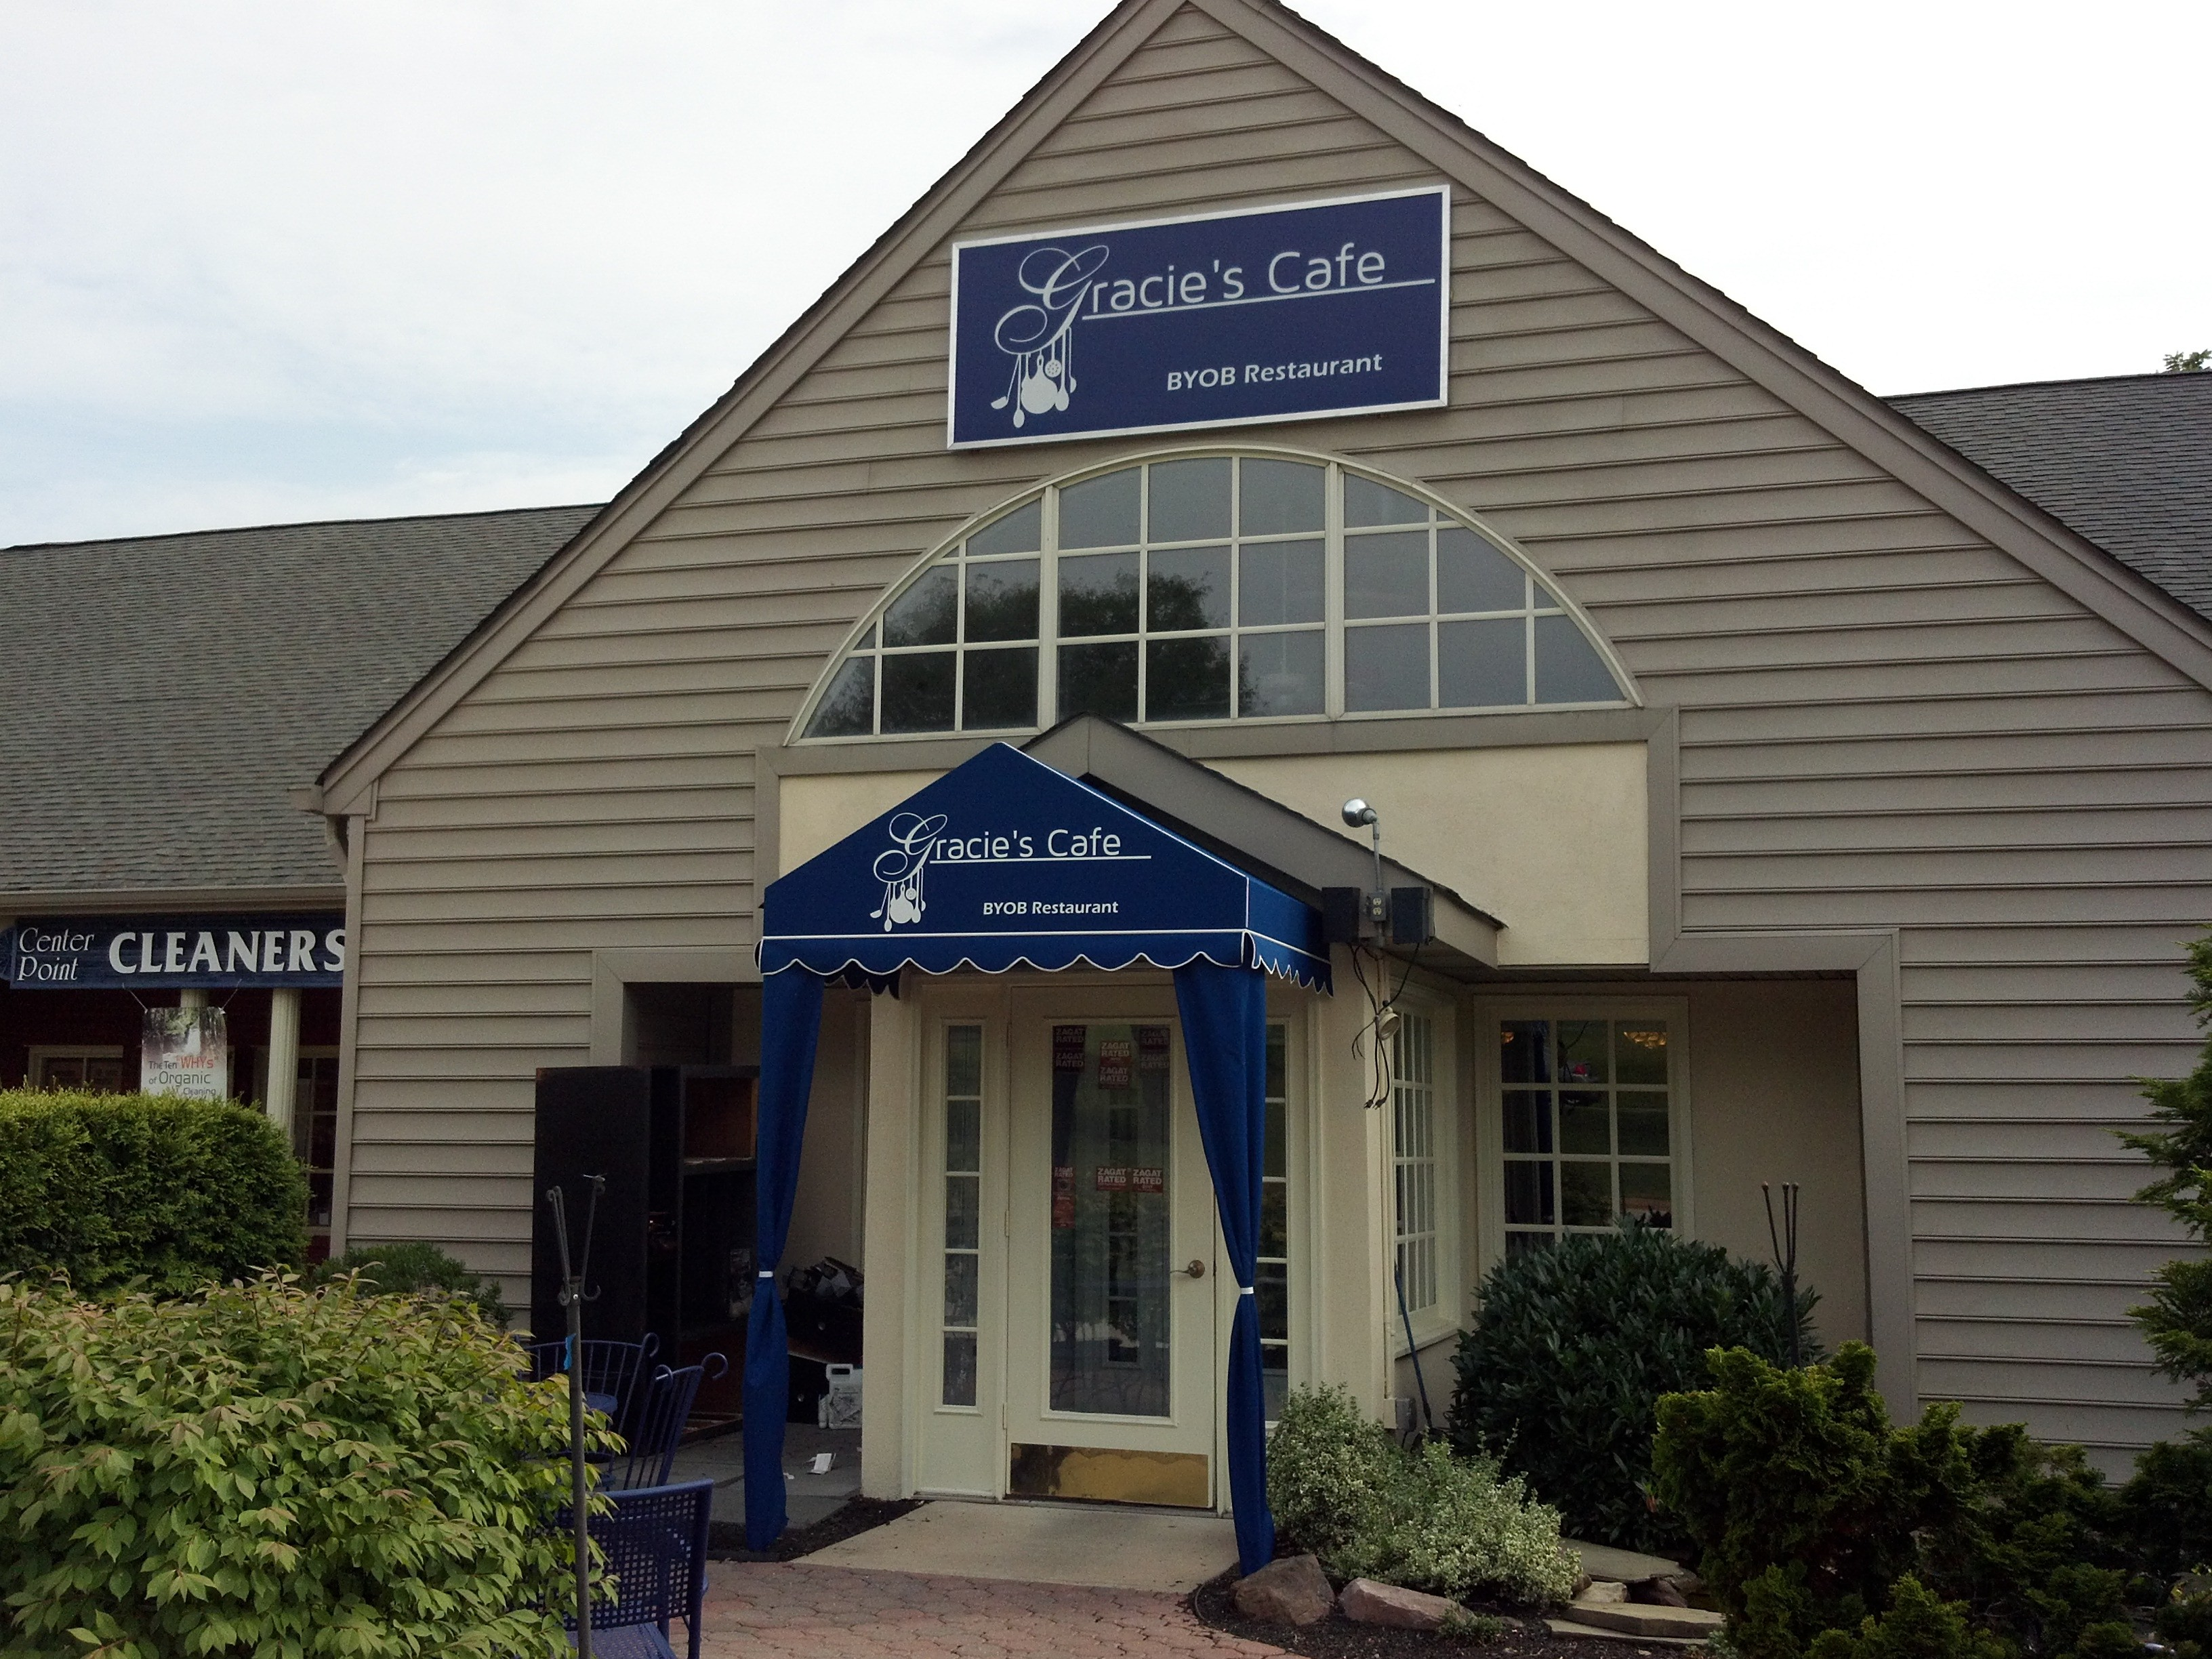 Gracies cafe sign and custom awning